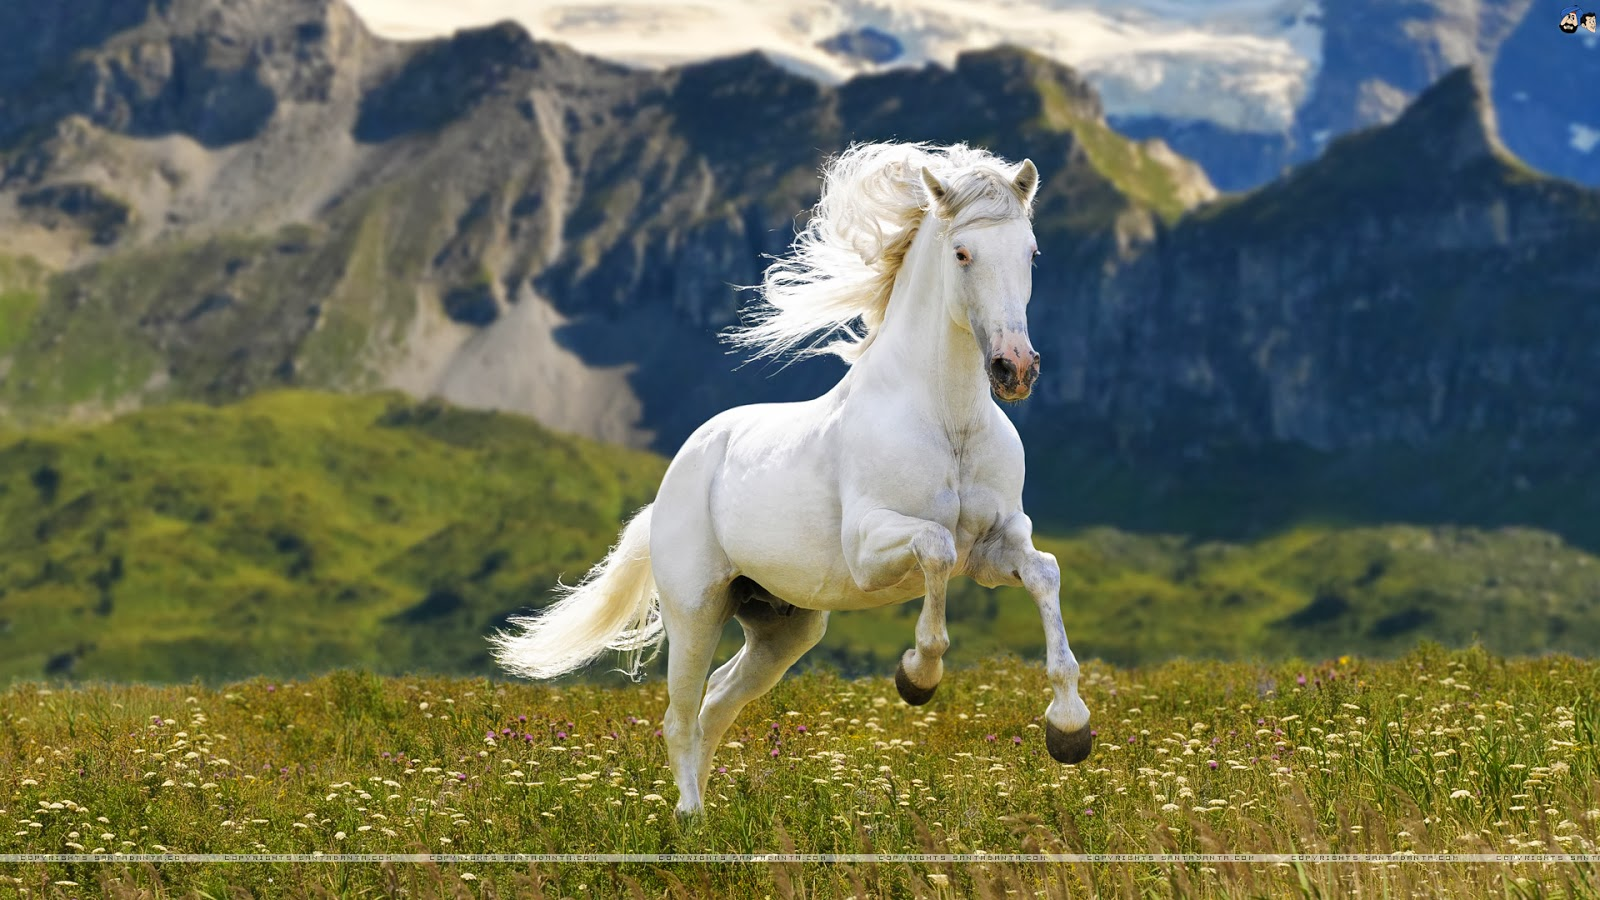 Group Of White Horse Free Hd